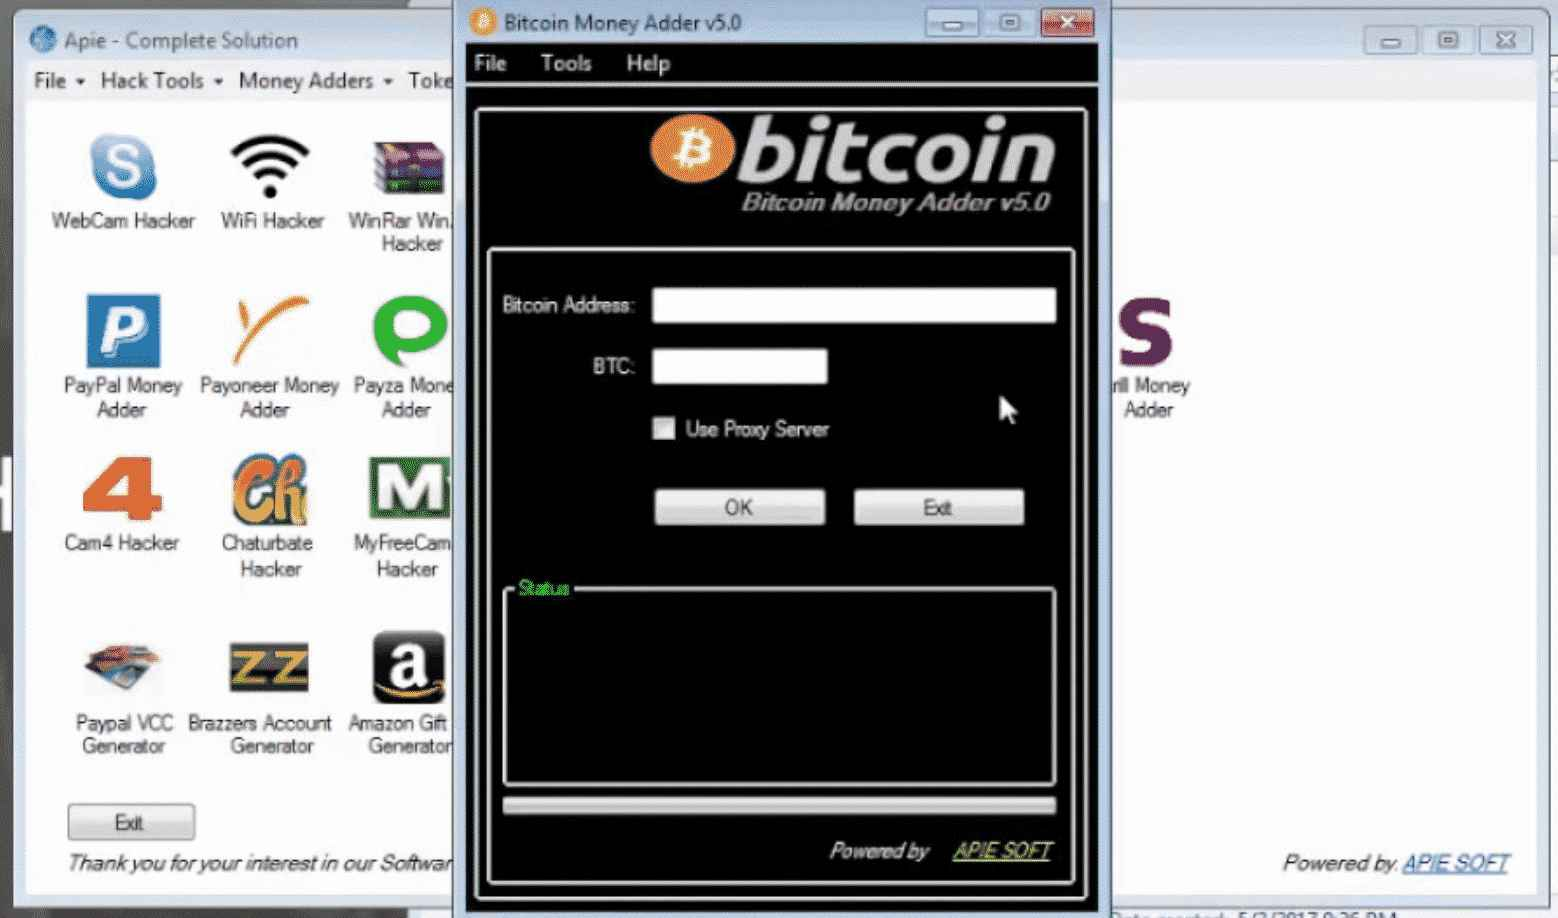 Apie Solution with Bitcoin Money Adder